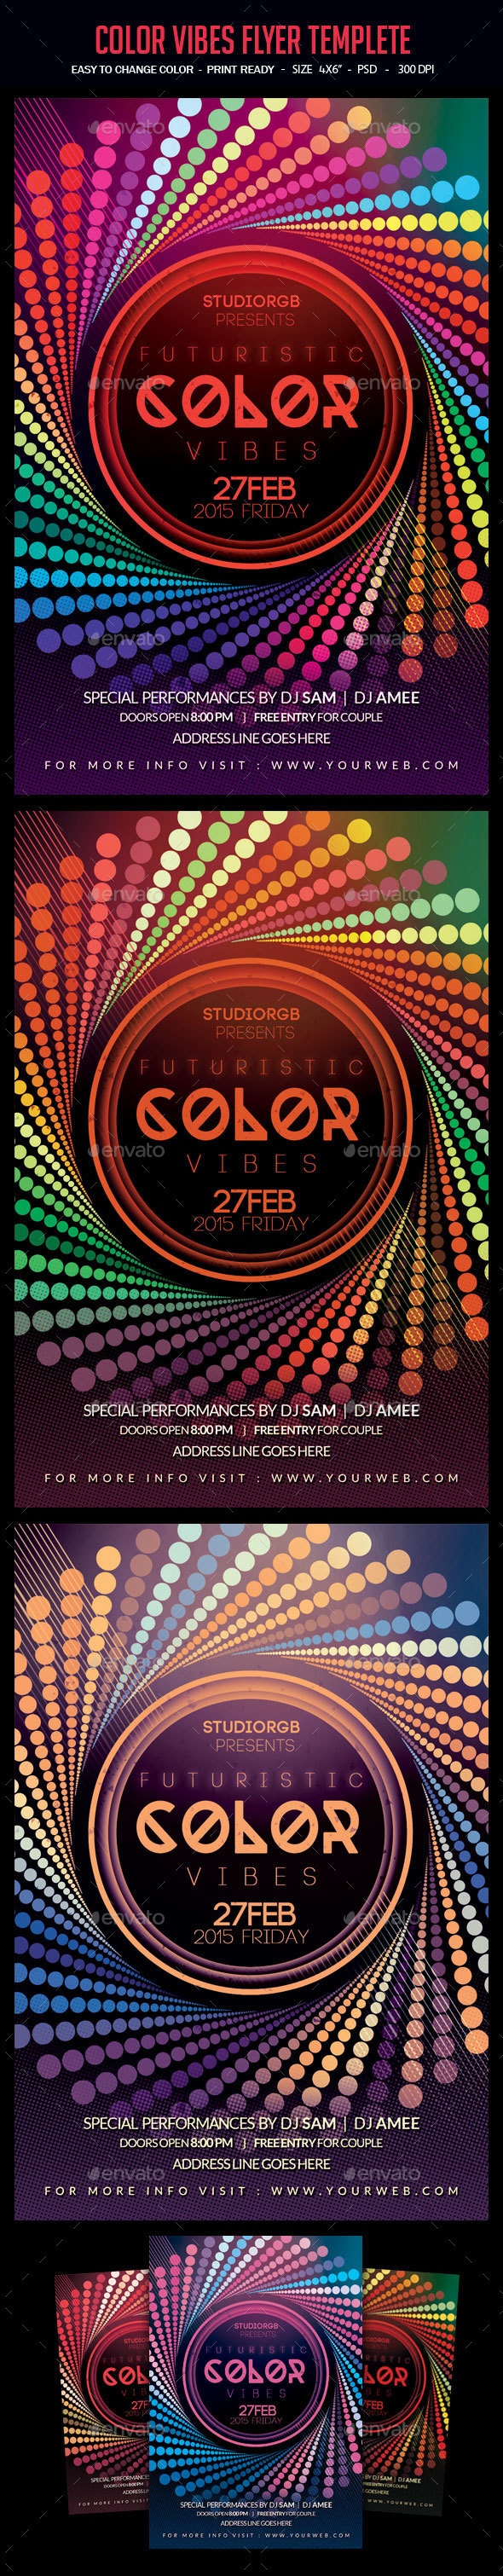 Color Vibes Flyer Template - Clubs & Parties Events